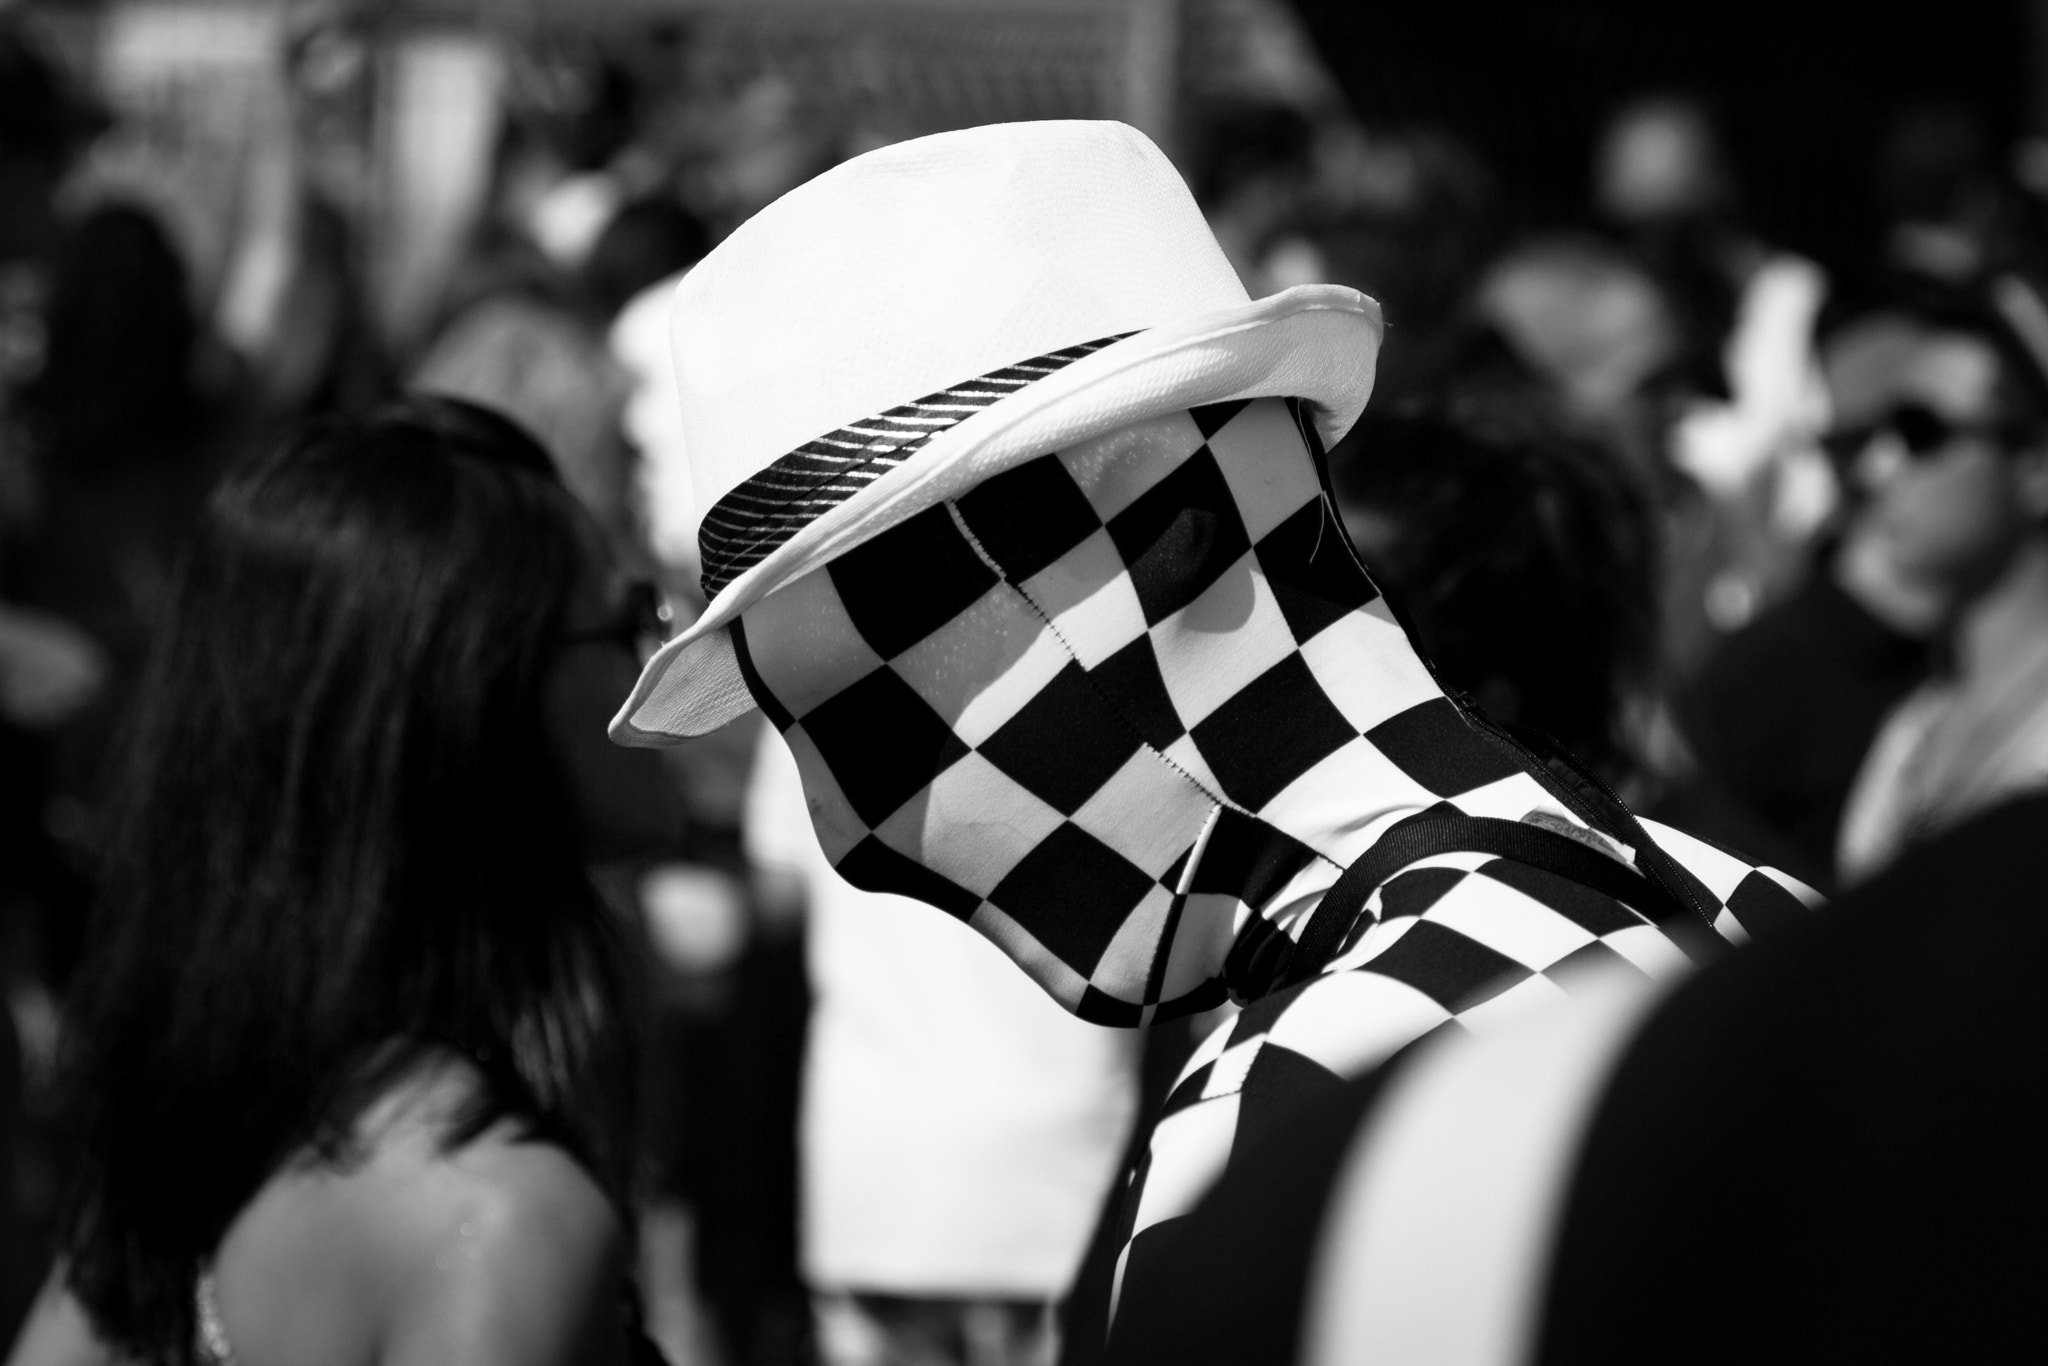 Photograph Chessbord Man by Xavier   on 500px